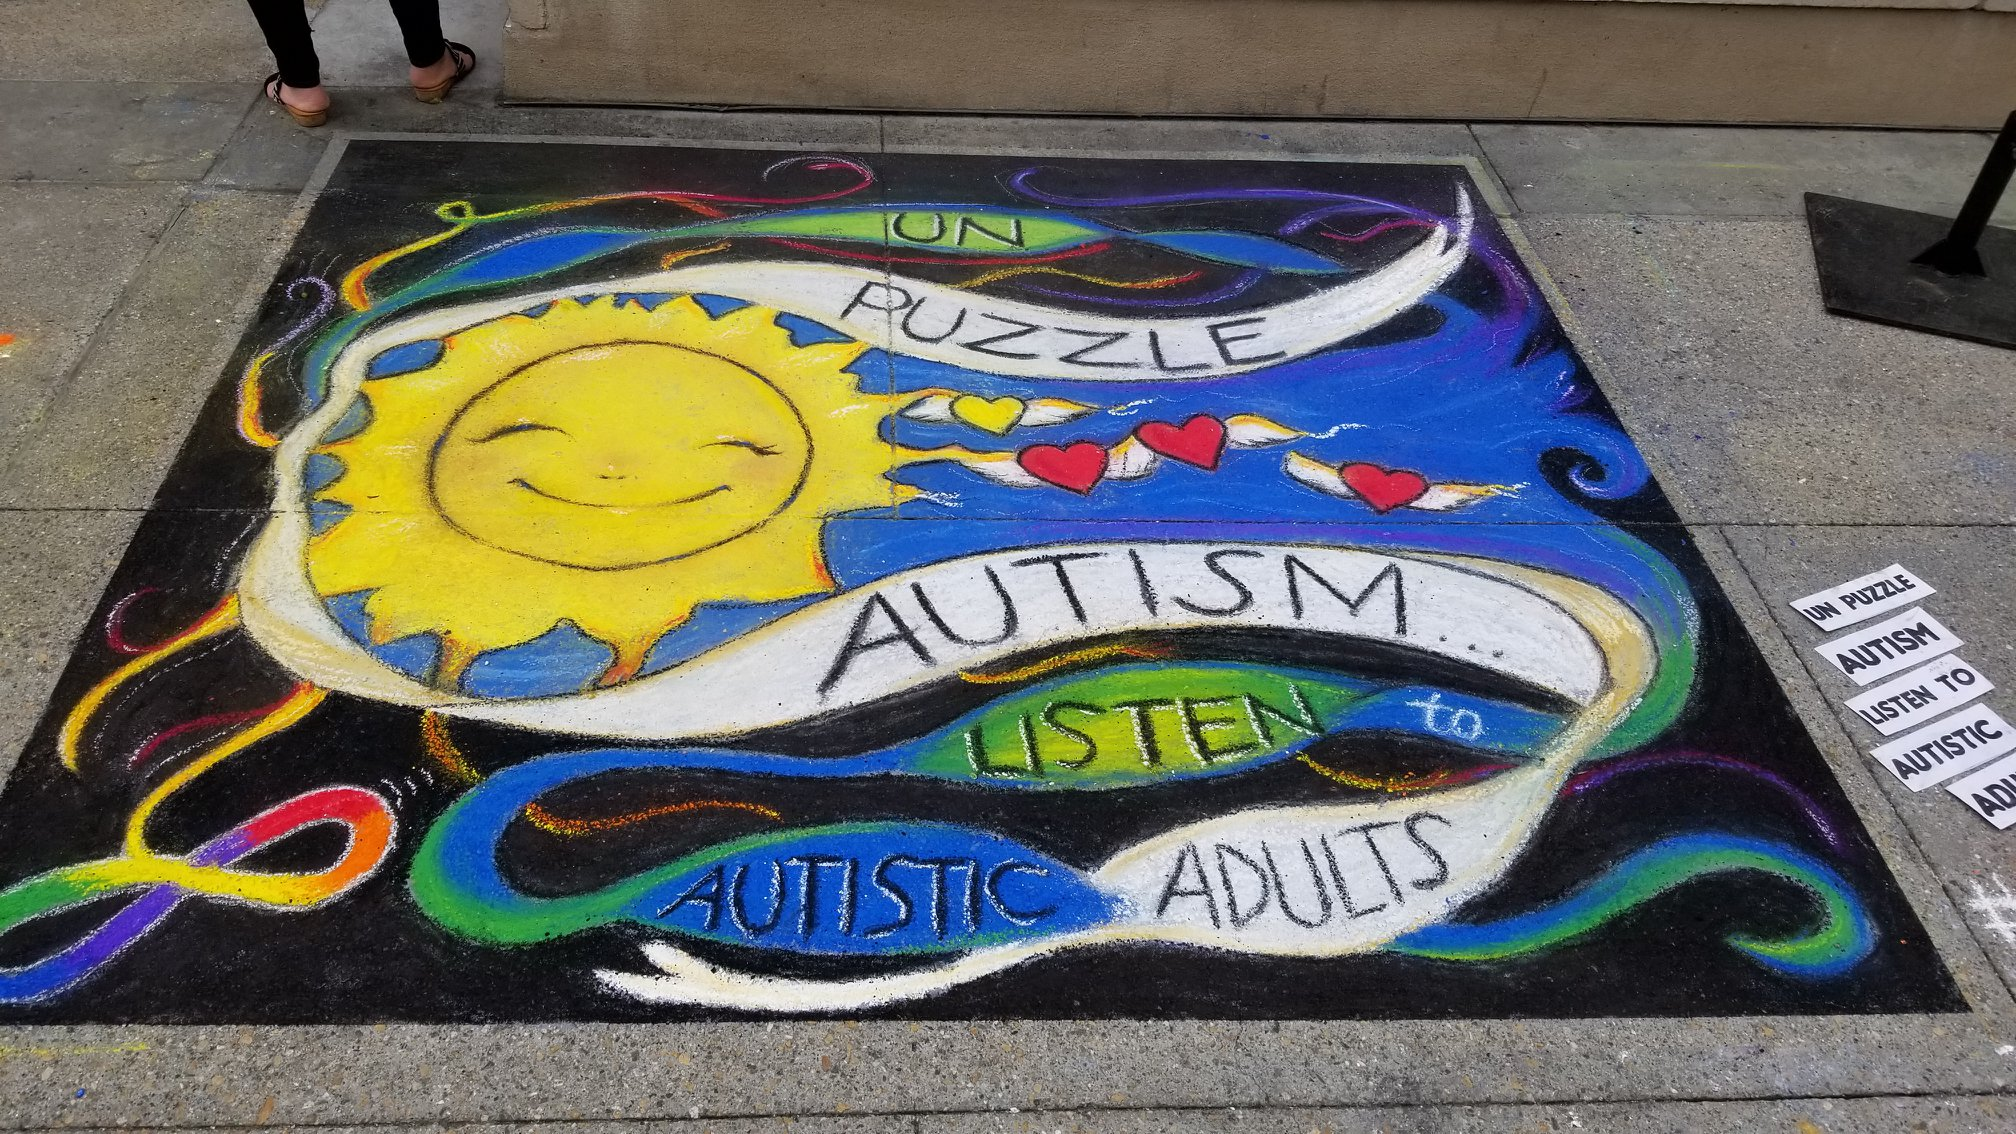 2018 Pasadena Chalk Festival art by Kelly Green & Carissa Paccerelli